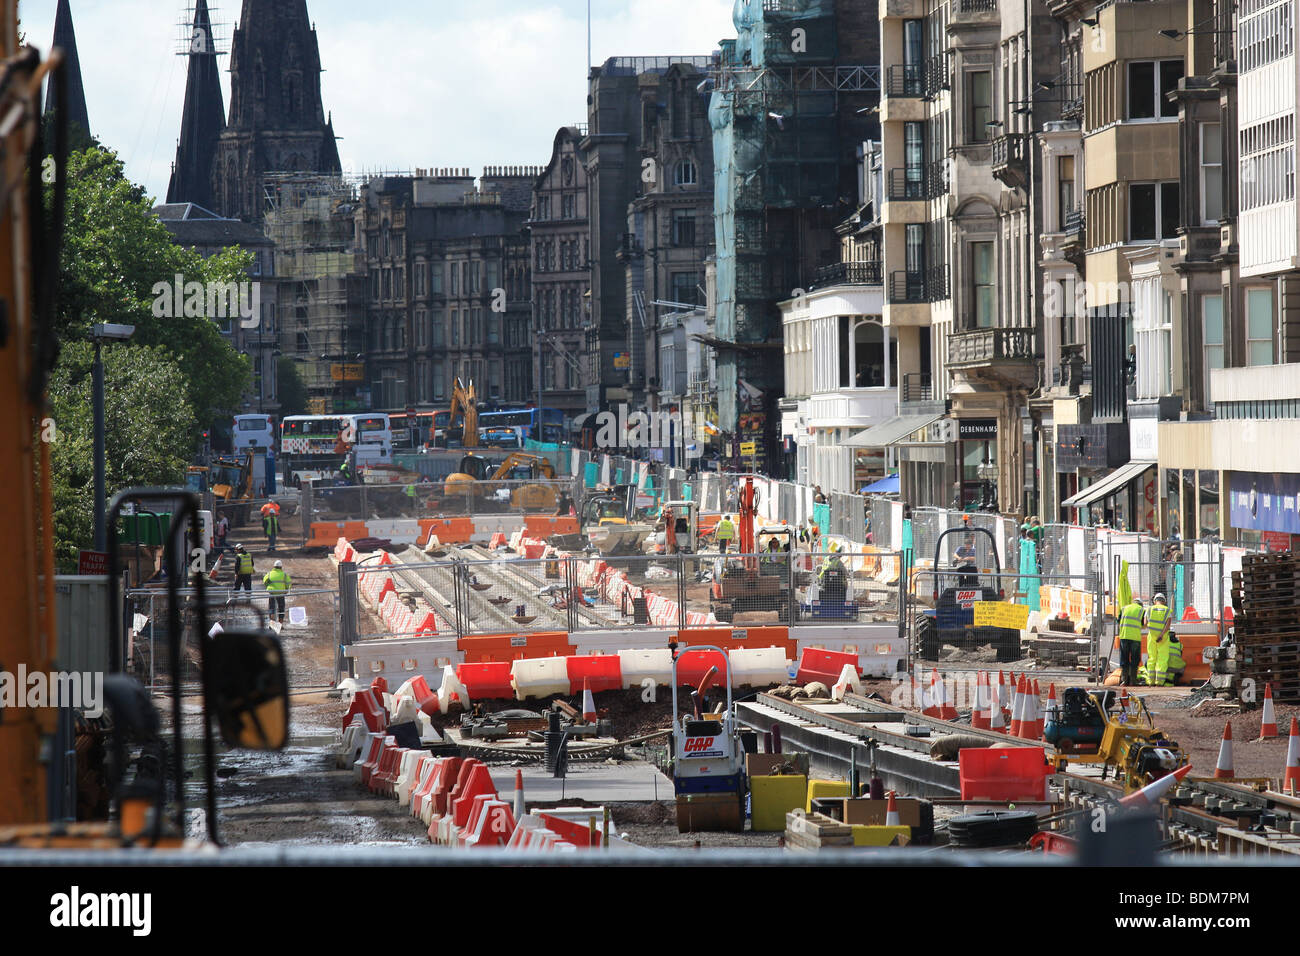 Edinburgh cities tram line being installed along Princes street 2009 - Stock Image